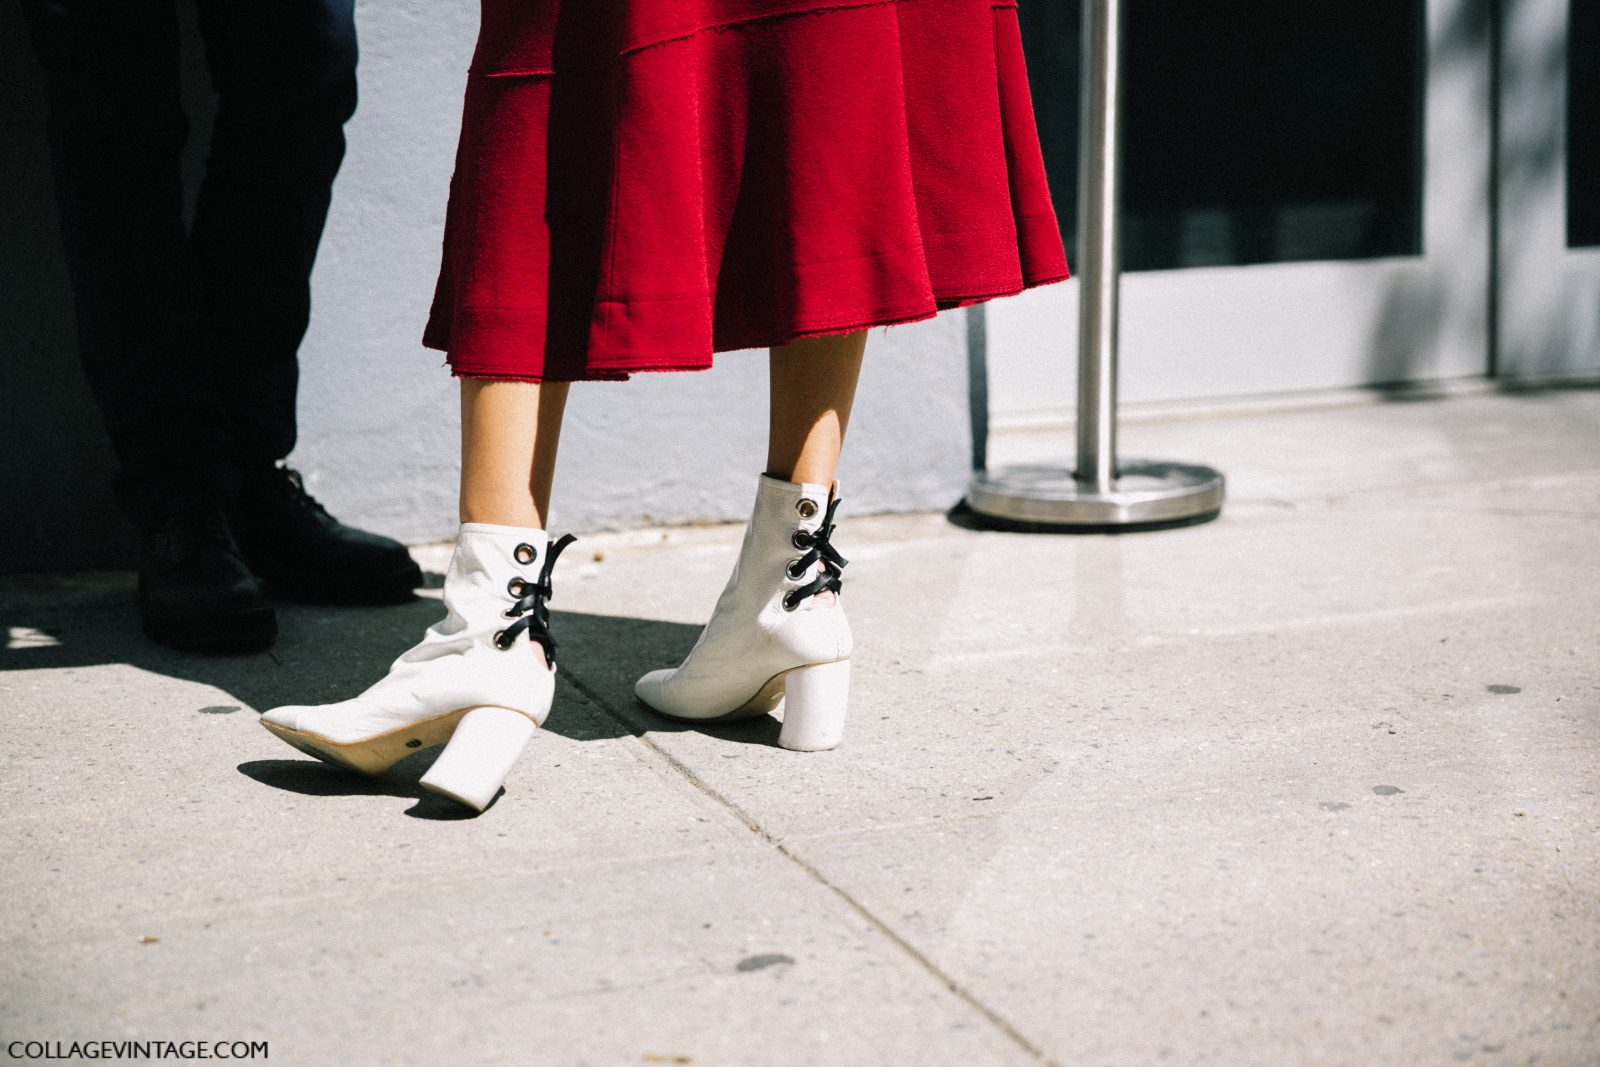 nyfw-new_york_fashion_week_ss17-street_style-outfits-collage_vintage-vintage-phillip_lim-the-row-proenza_schouler-rossie_aussolin-3